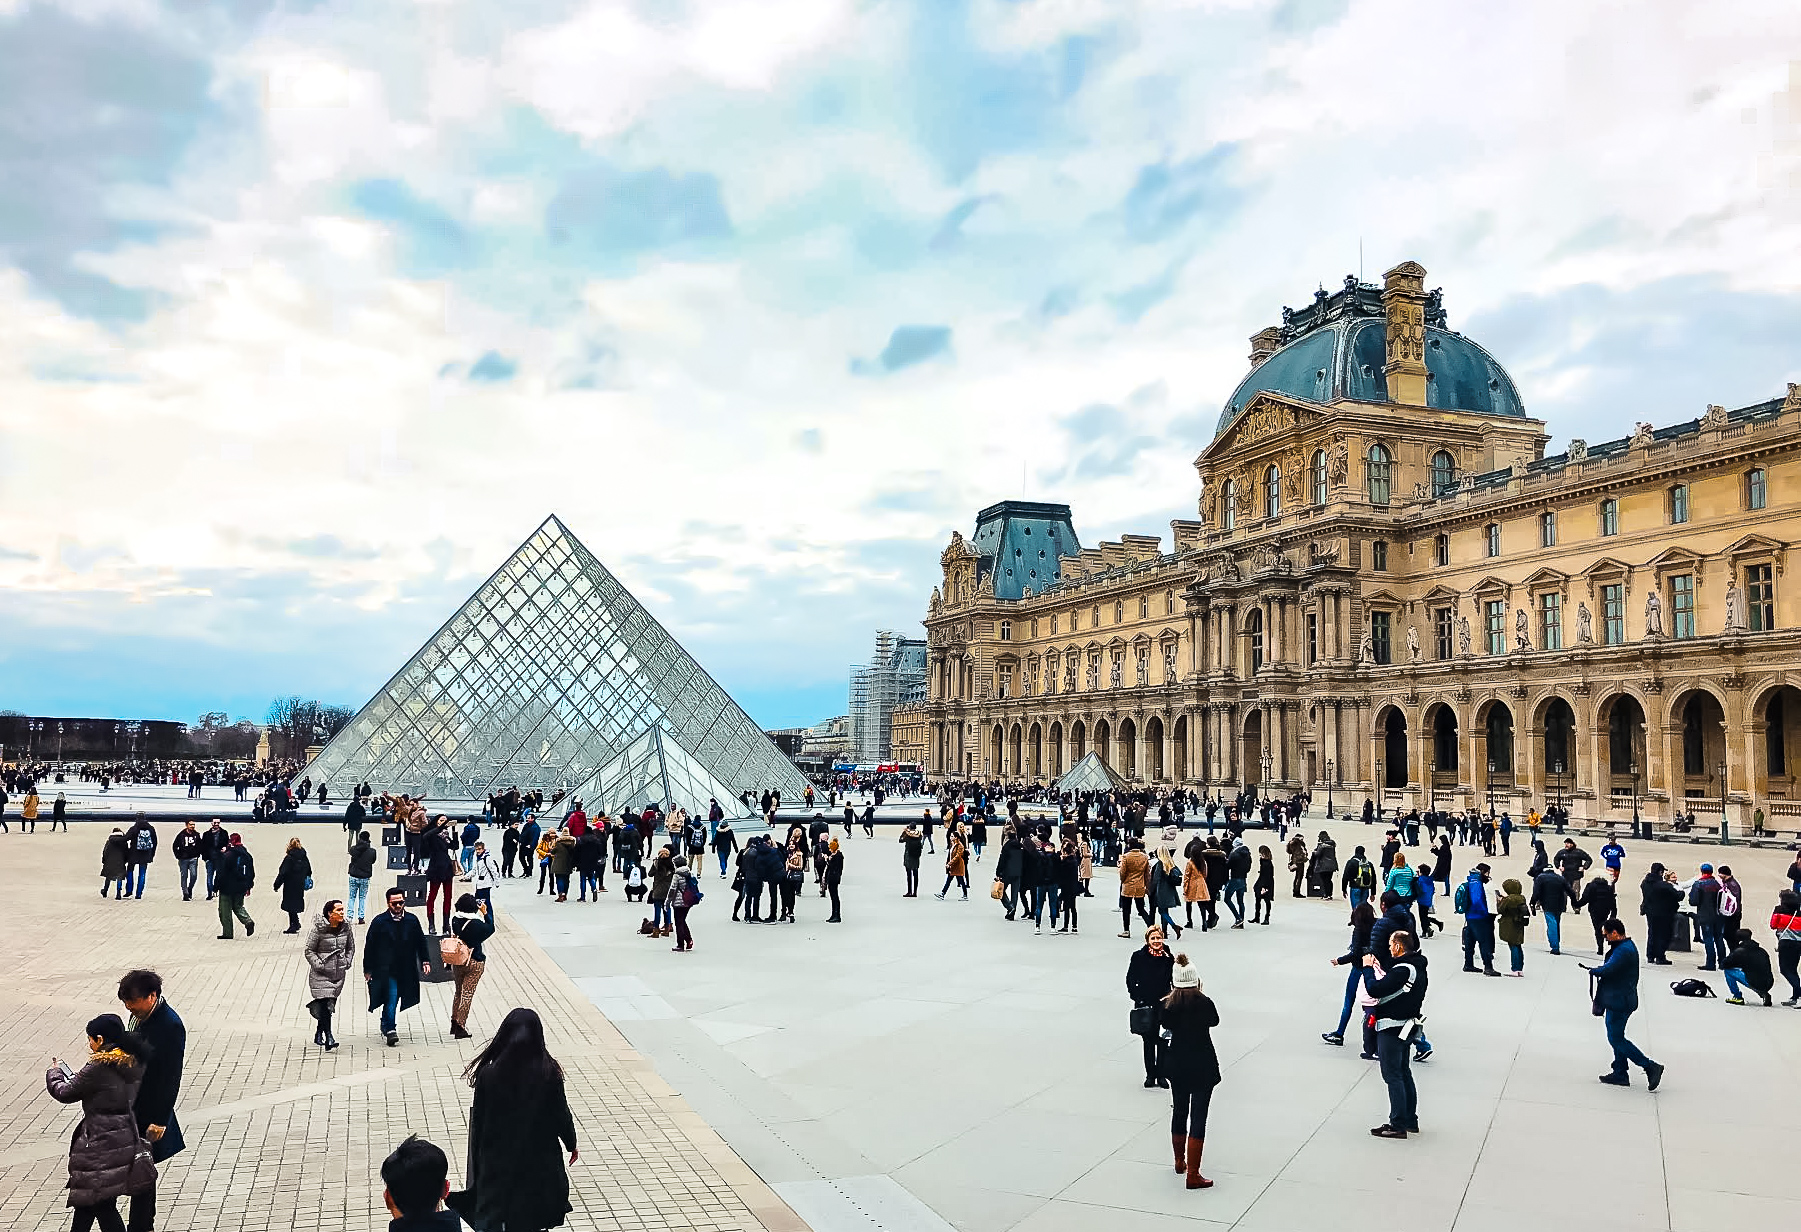 Louvre Museum's glass pyramid surrounded by people